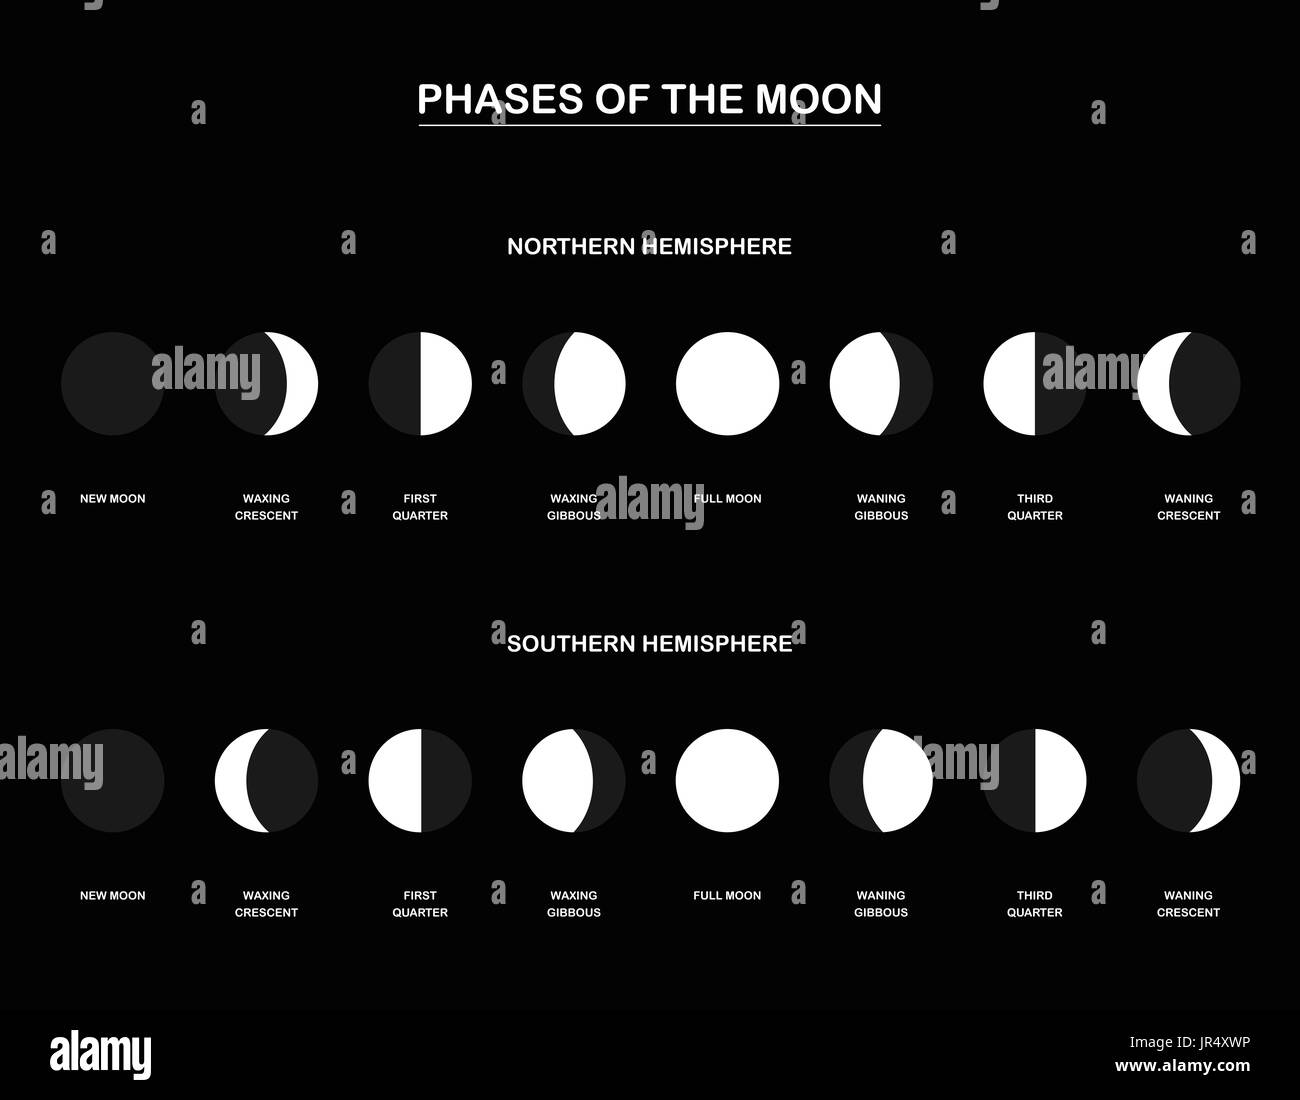 Phases Of The Moon Illustration Stock Photos Amp Phases Of